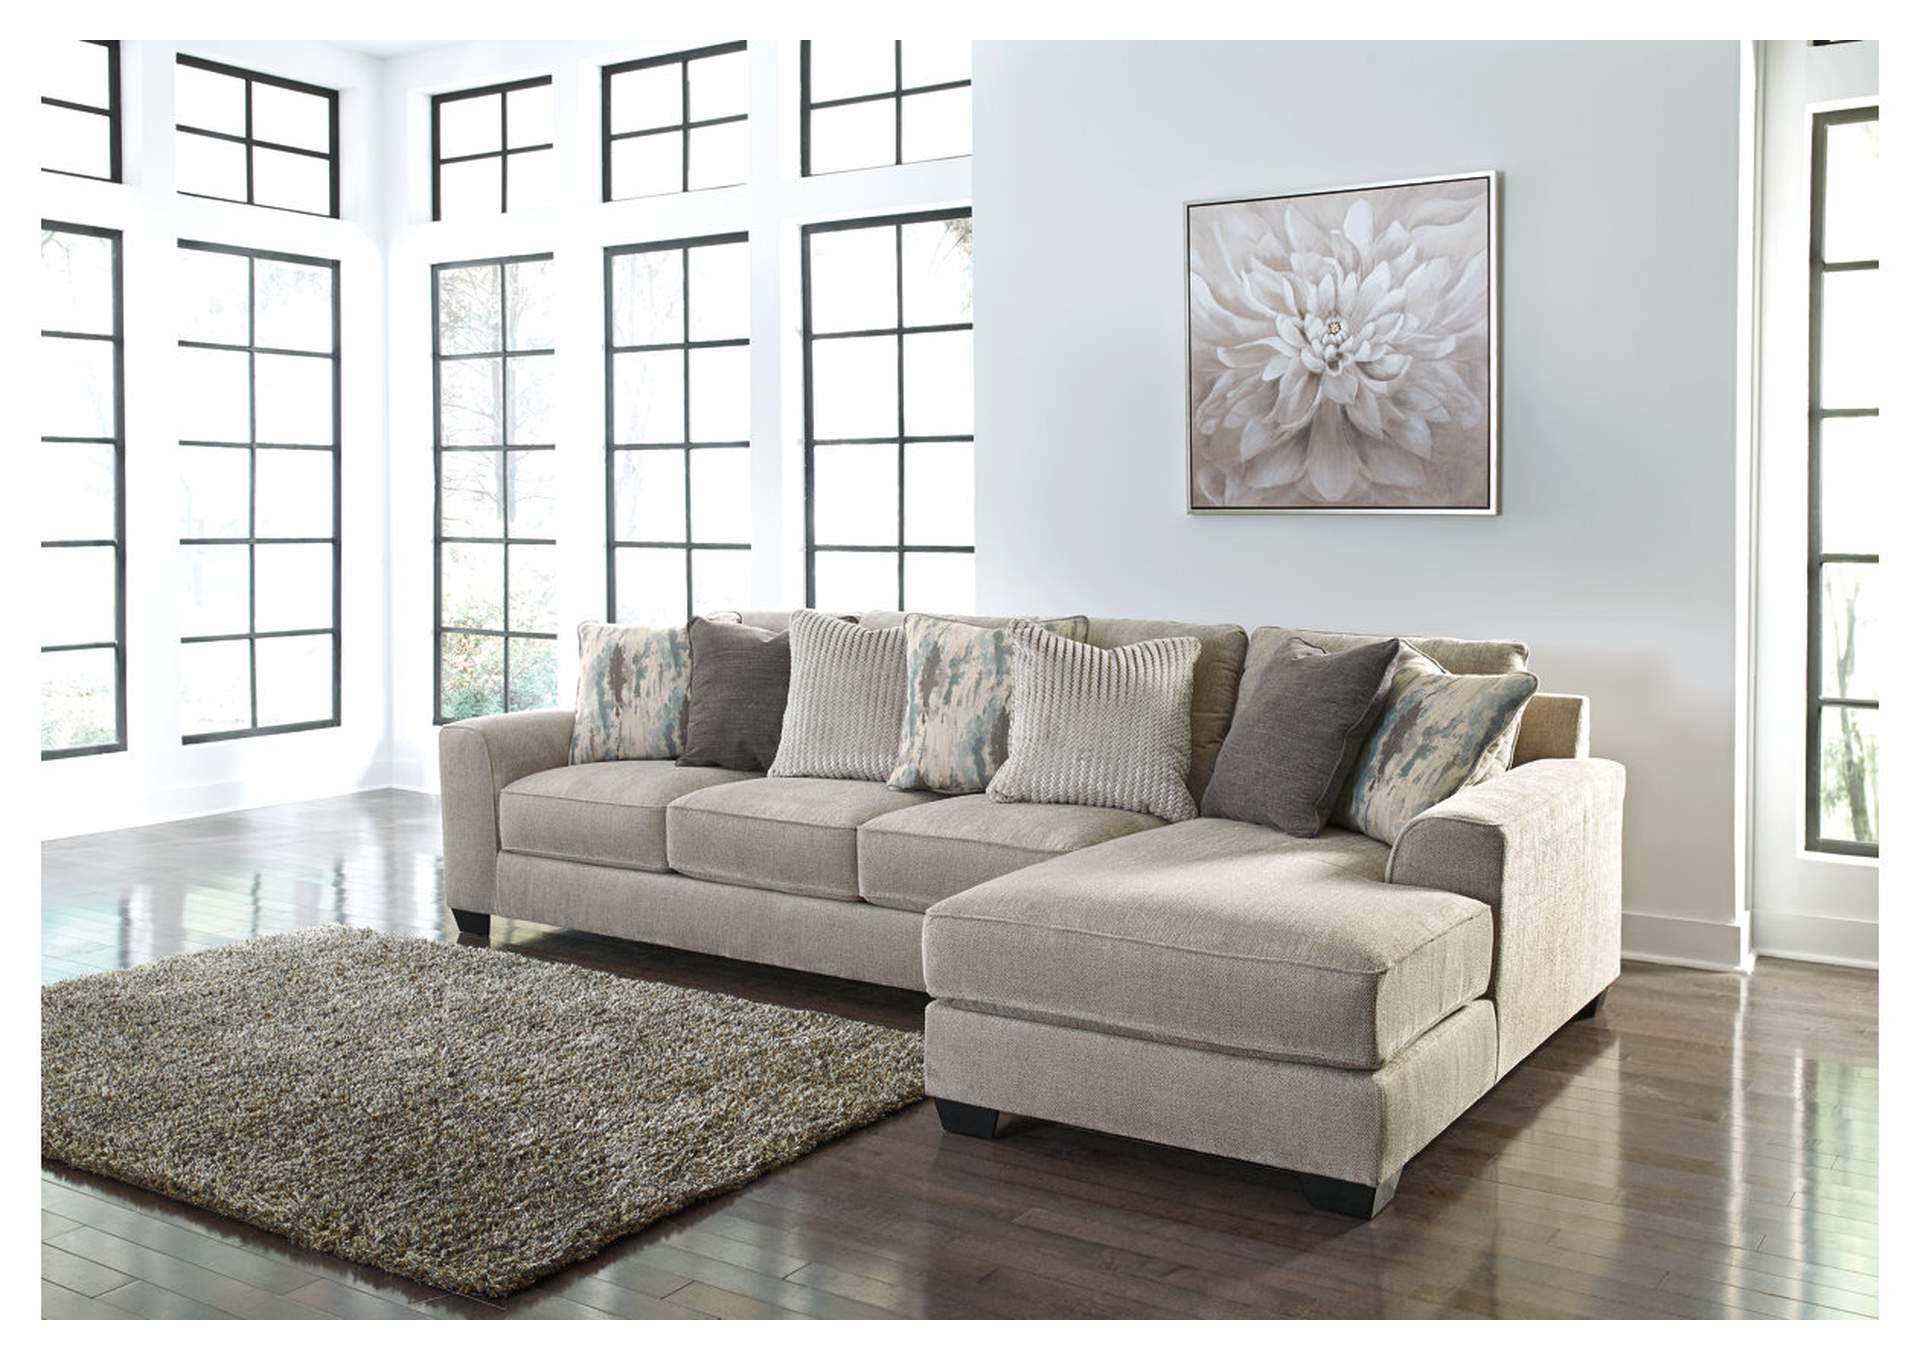 Ardsley Pewter 2 Piece RAF Chaise Sectional,Benchcraft